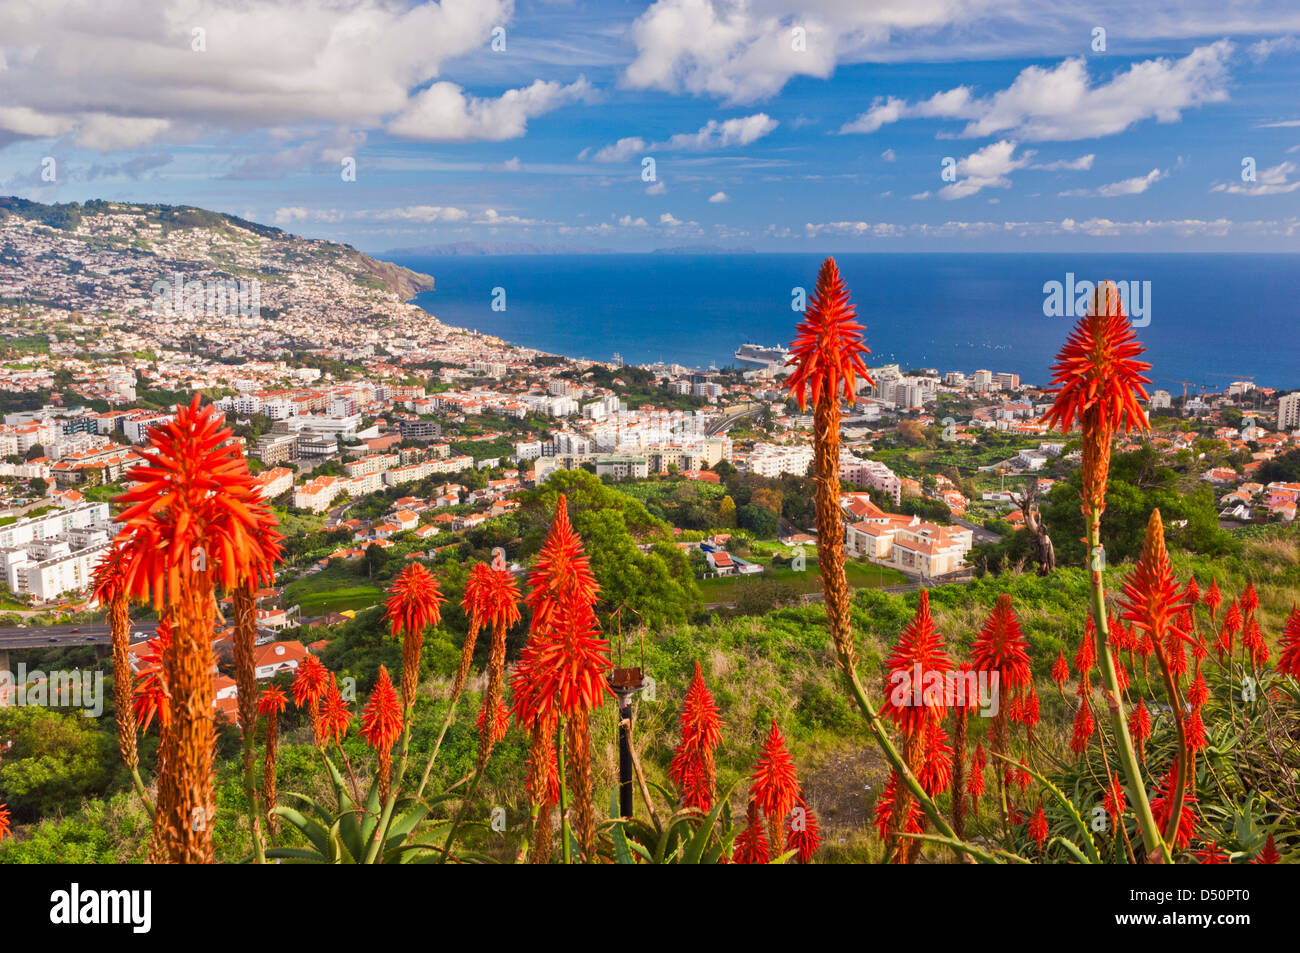 View over Funchal, capital city of Madeira, city and harbour with Aloe plants in foreground, Portugal, EU, Europe - Stock Image